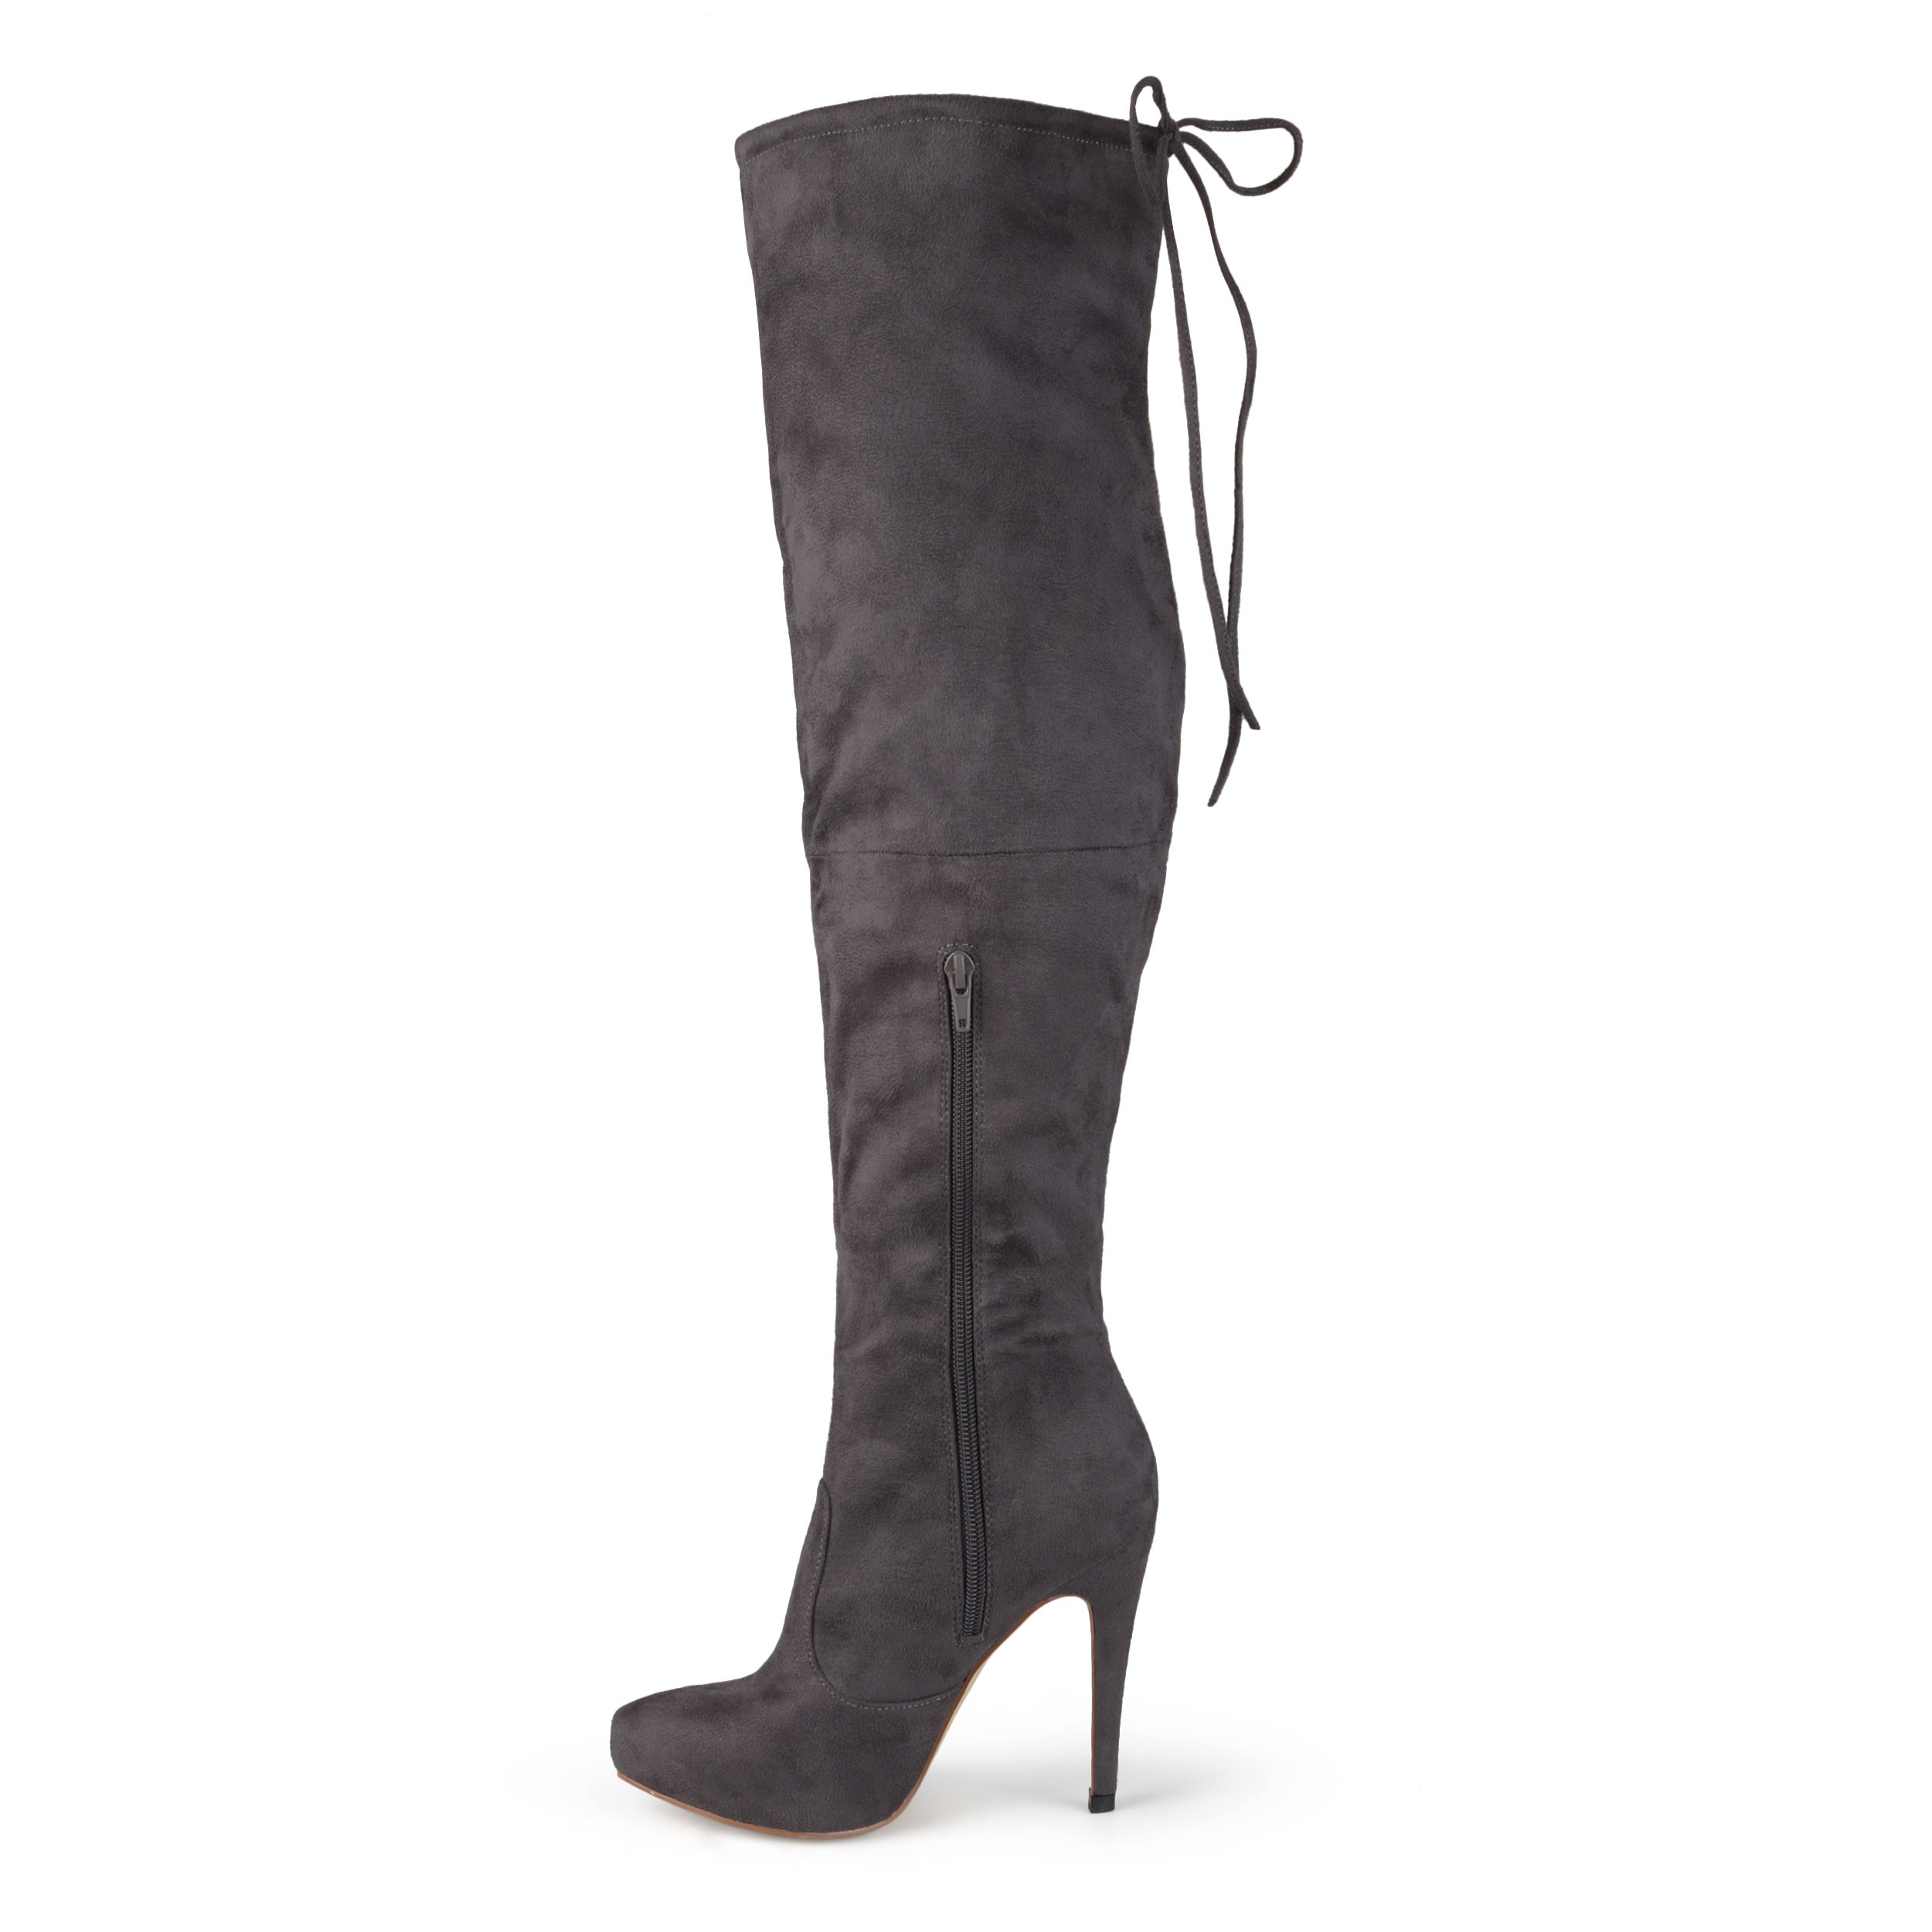 2fbff44de5db Shop Journee Collection Women s  Magic  Regluar and Wide-calf Over-the-knee  High Heel Boots - Free Shipping Today - Overstock - 10356100